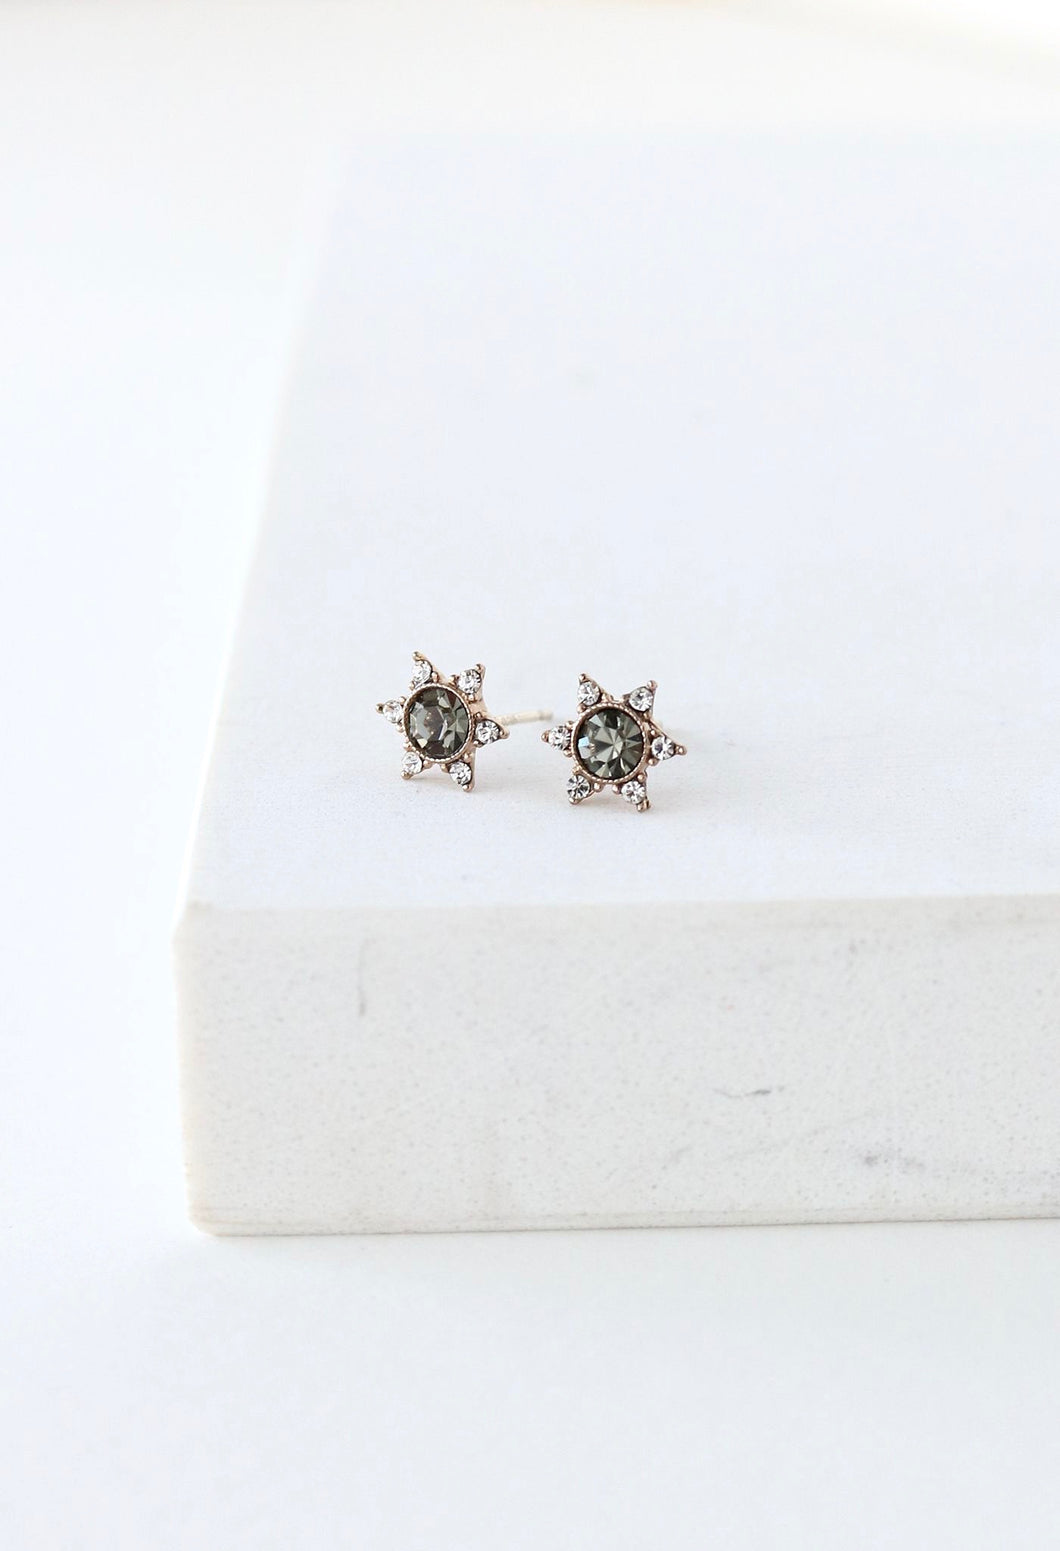 Starlit Stud Earrings - Black Diamond